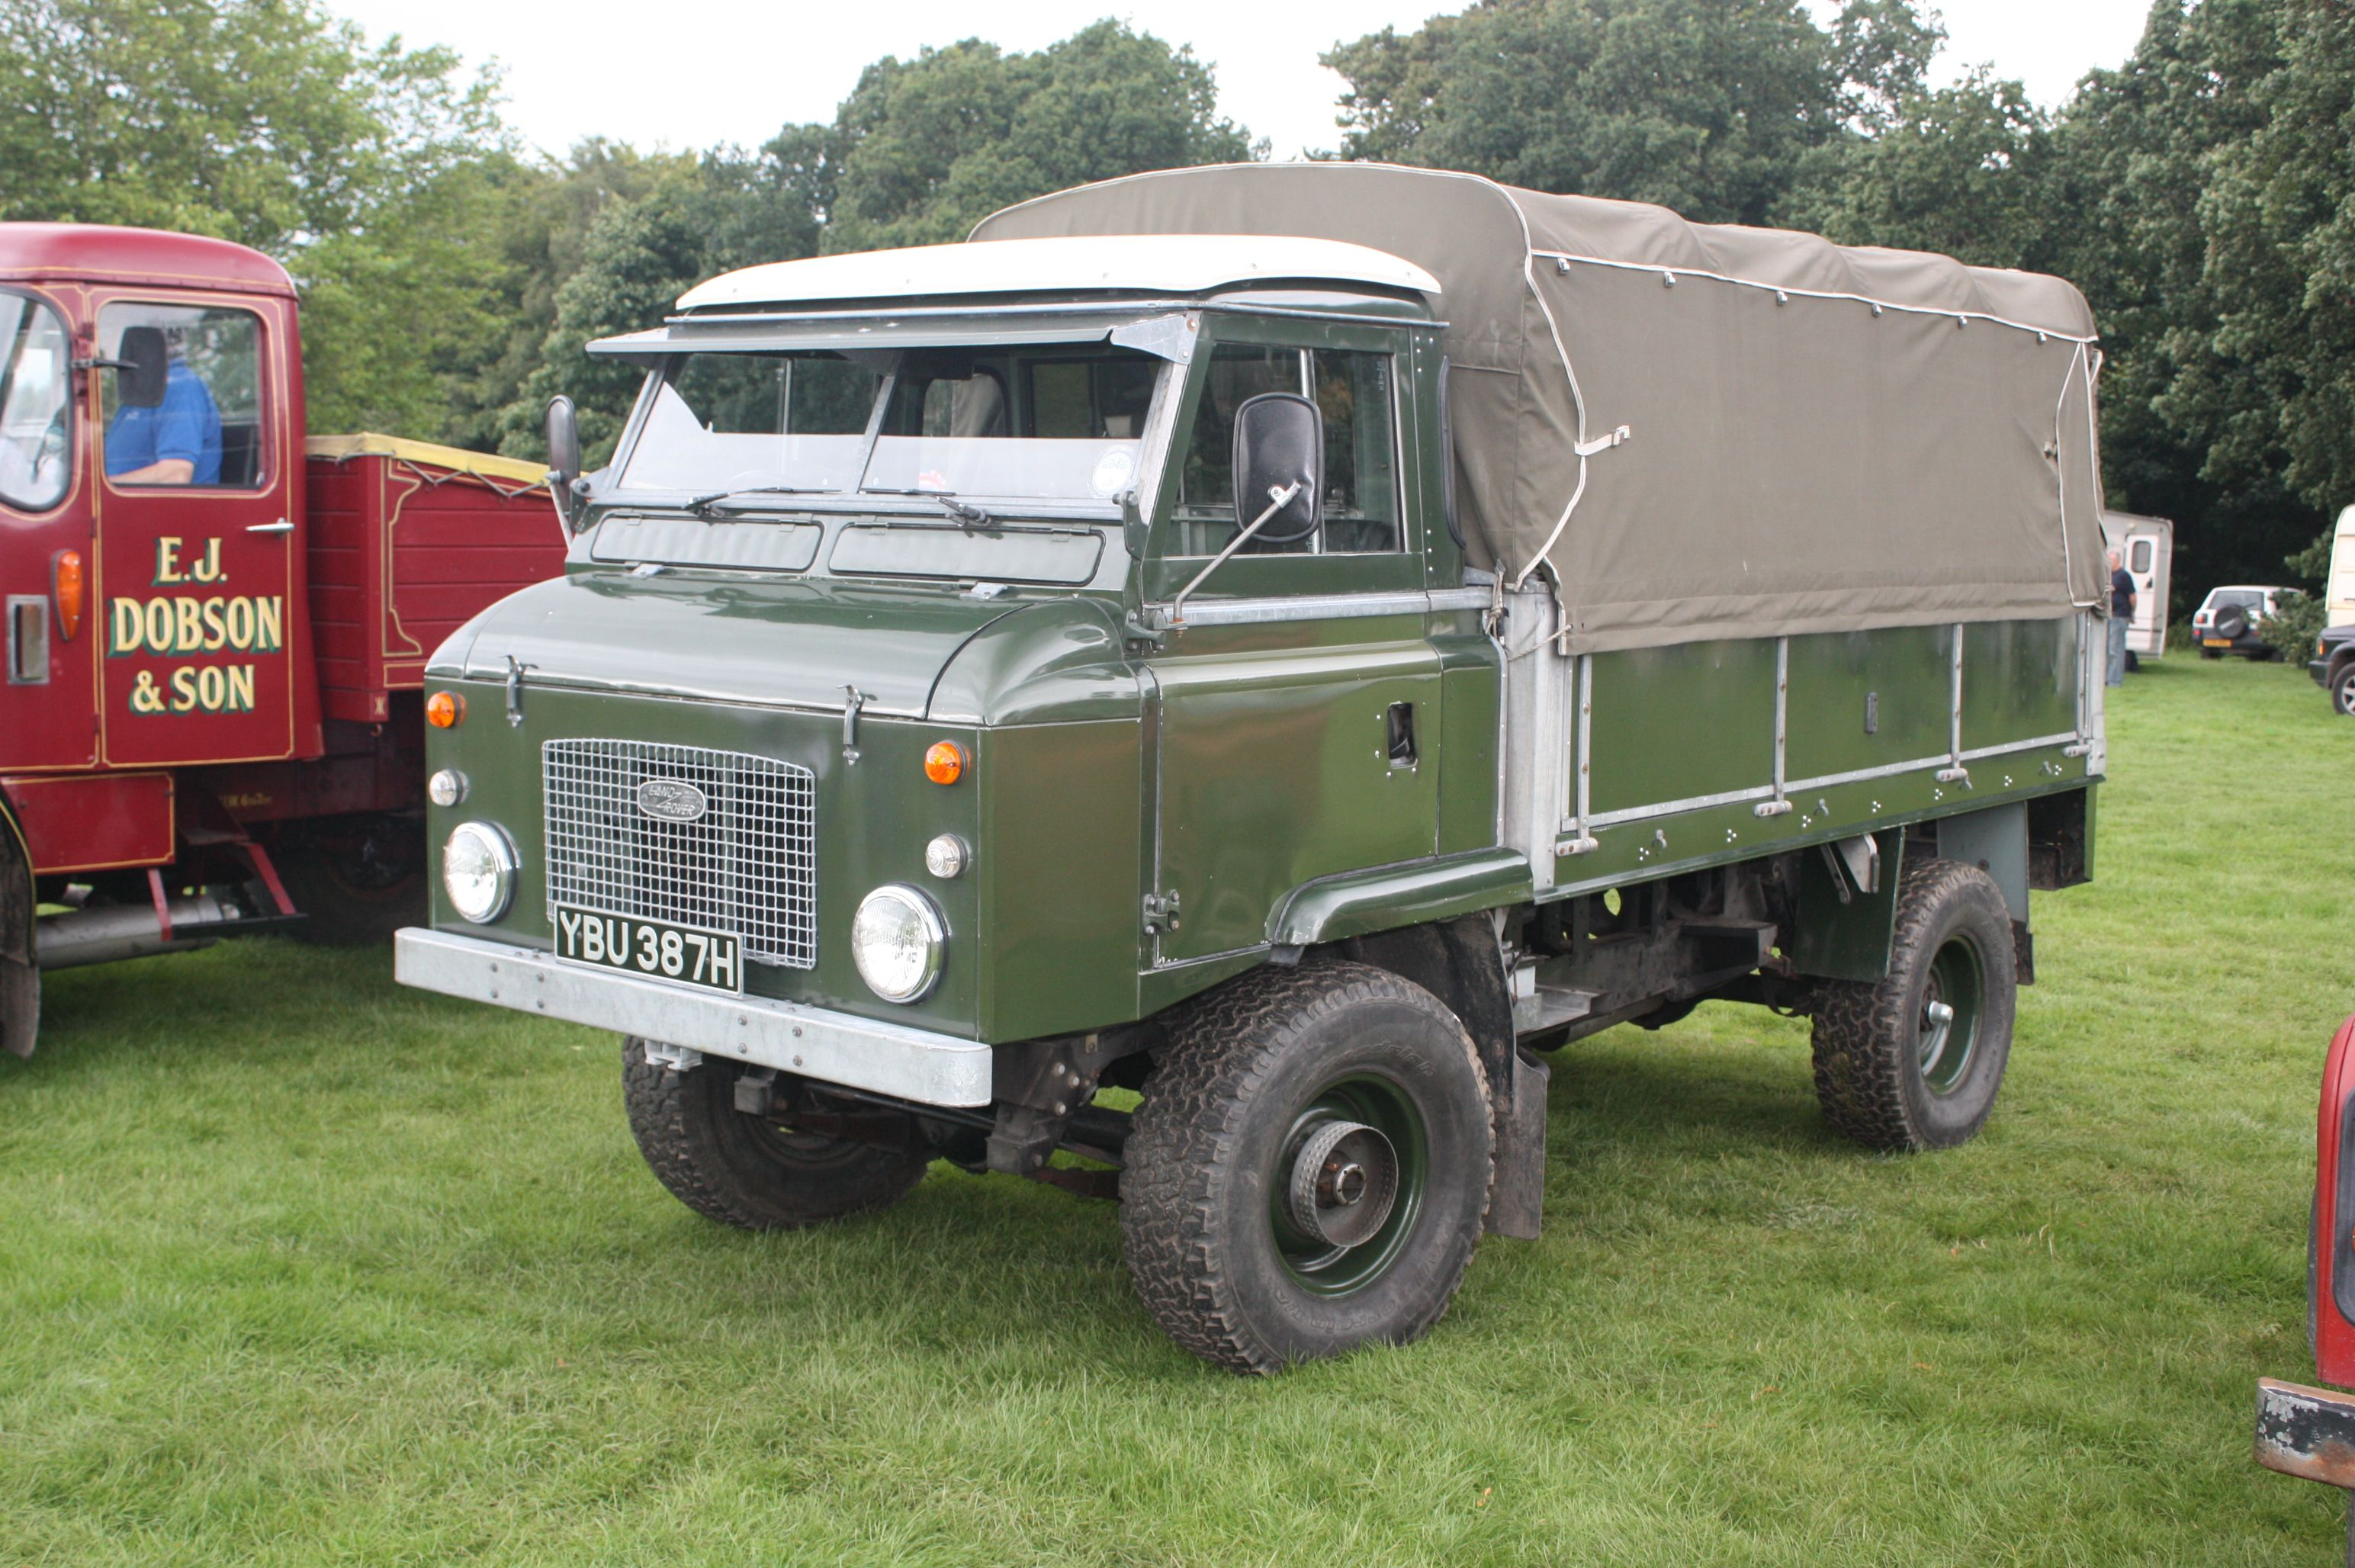 Pin by Rob ferman on Land Rover Pinterest